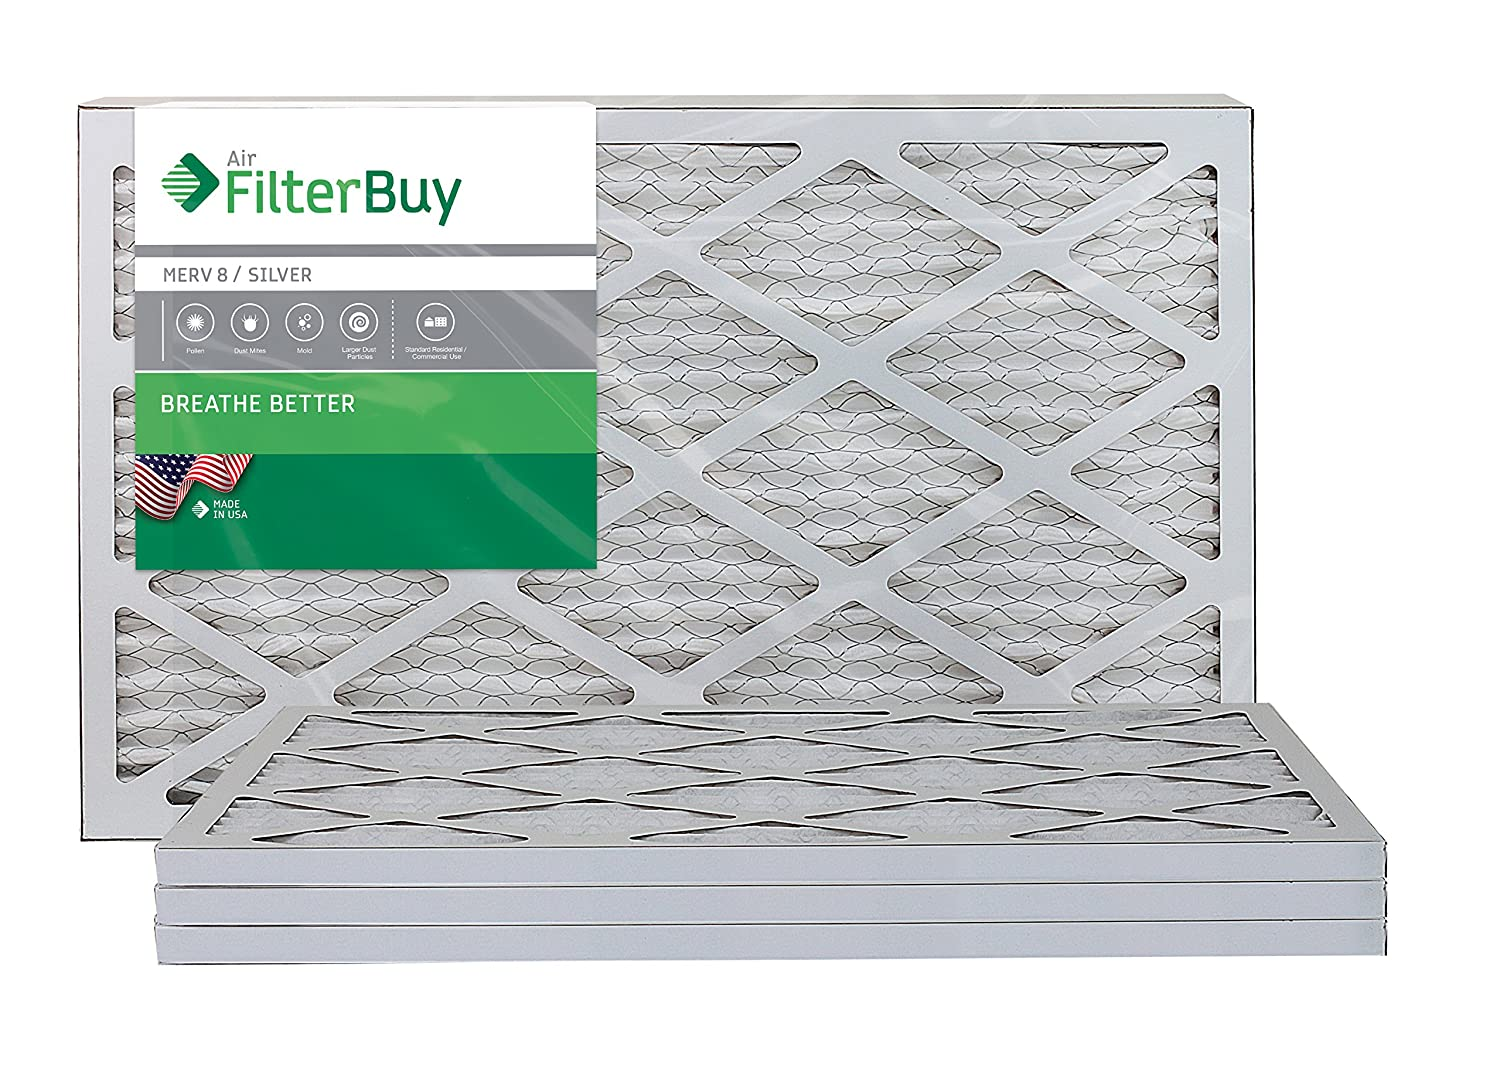 2. FilterBuy 14x25x1 MERV 8 Pleated AC Furnace Air Filter, (Pack of 4 Filters), 14x25x1 - Silver